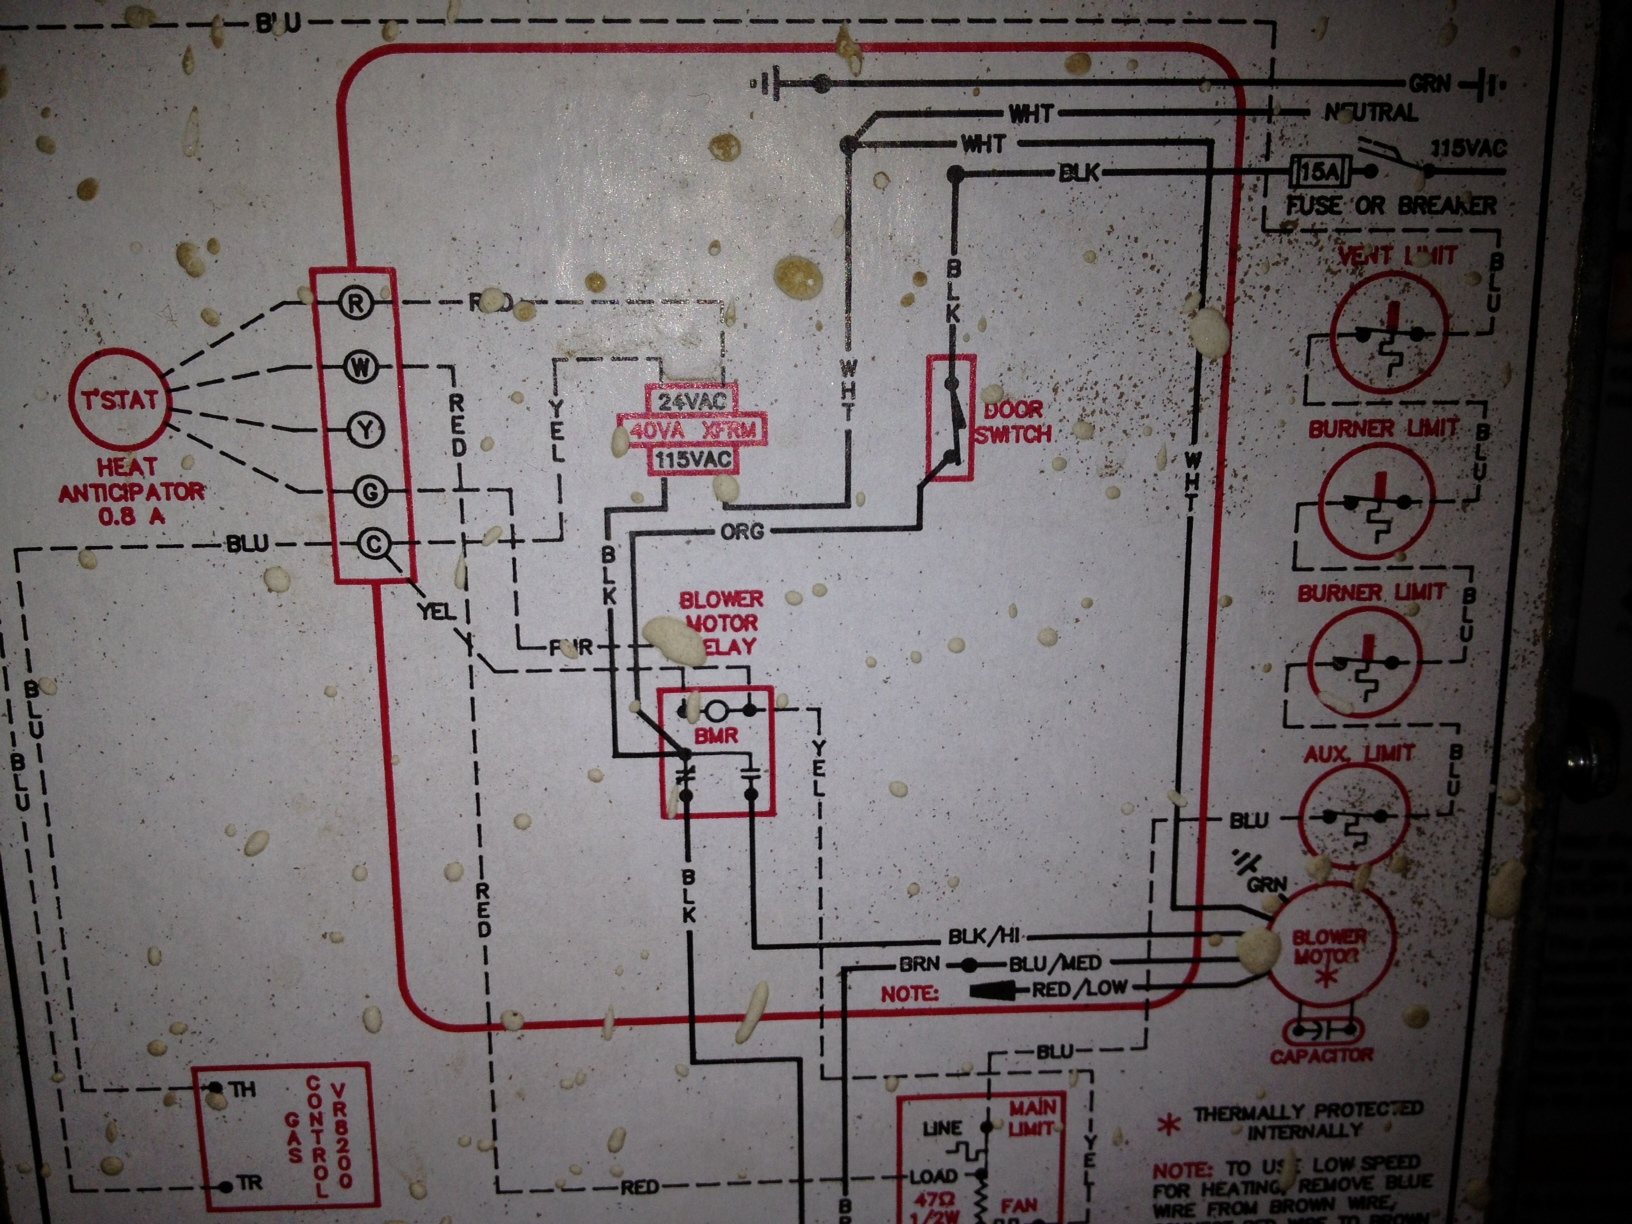 I Am Replacing A Honeywell Chronotherm Iii With A Honewell